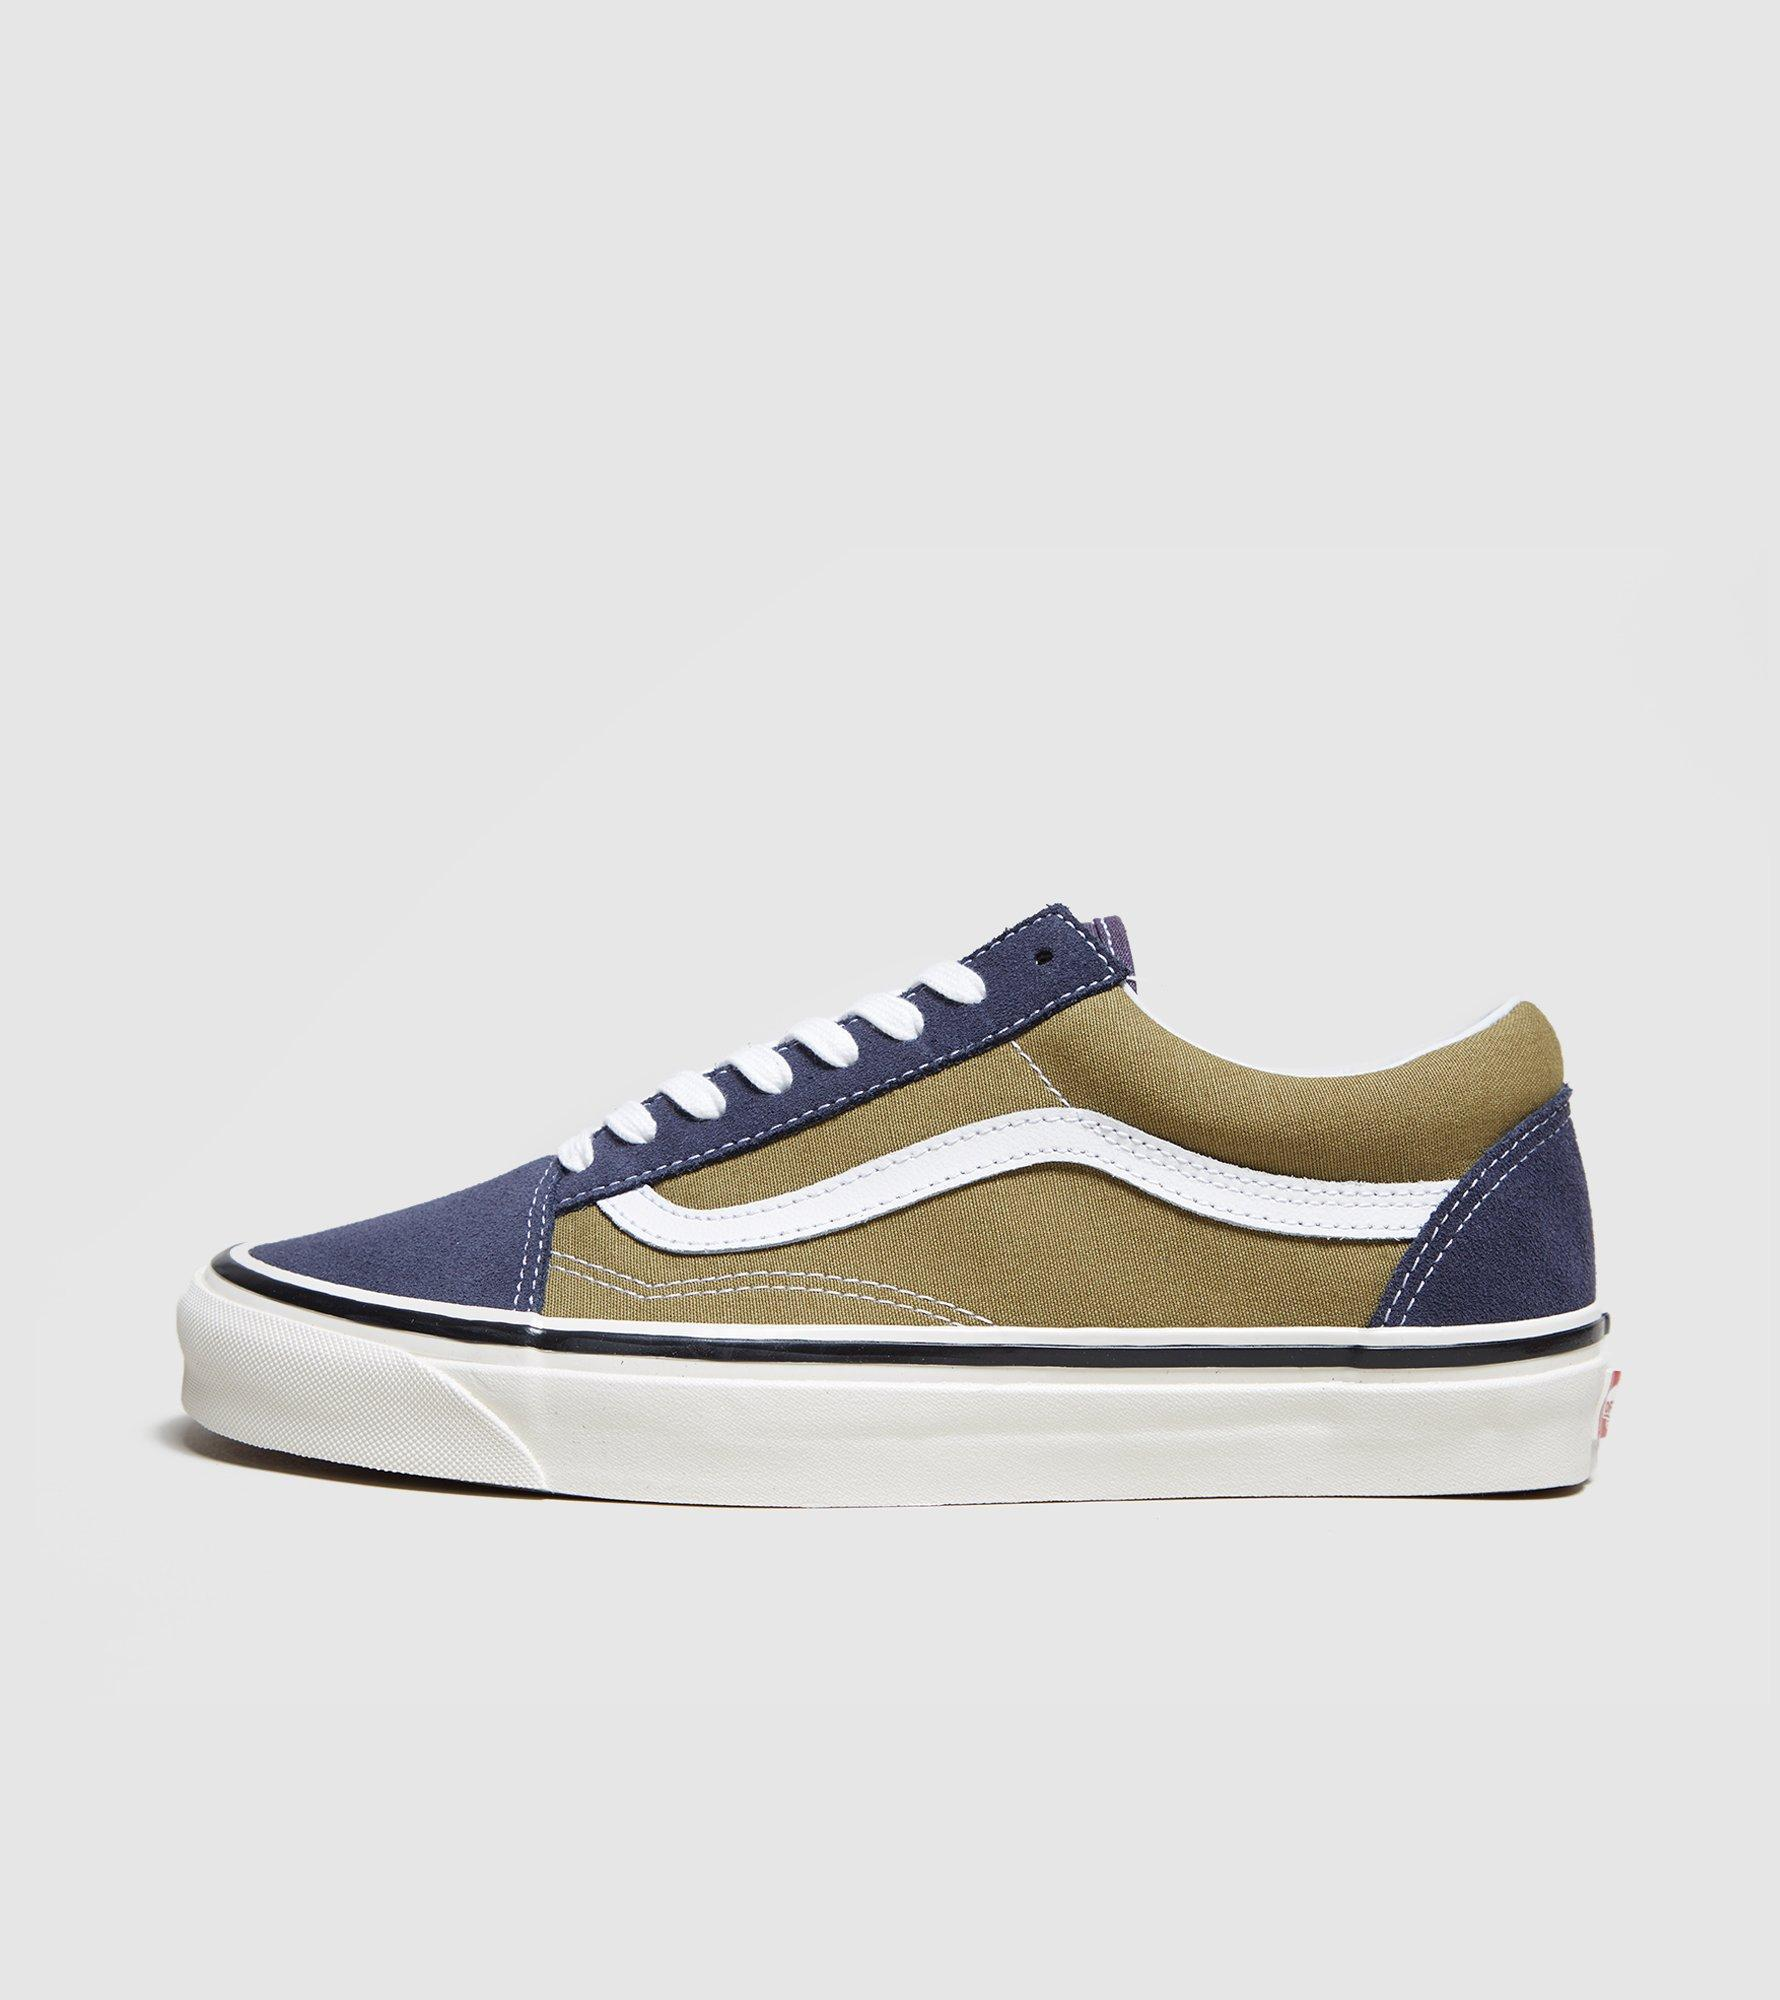 41a2c632d7 Lyst - Vans Anaheim Old Skool - Size  European Exclusive in Blue for Men